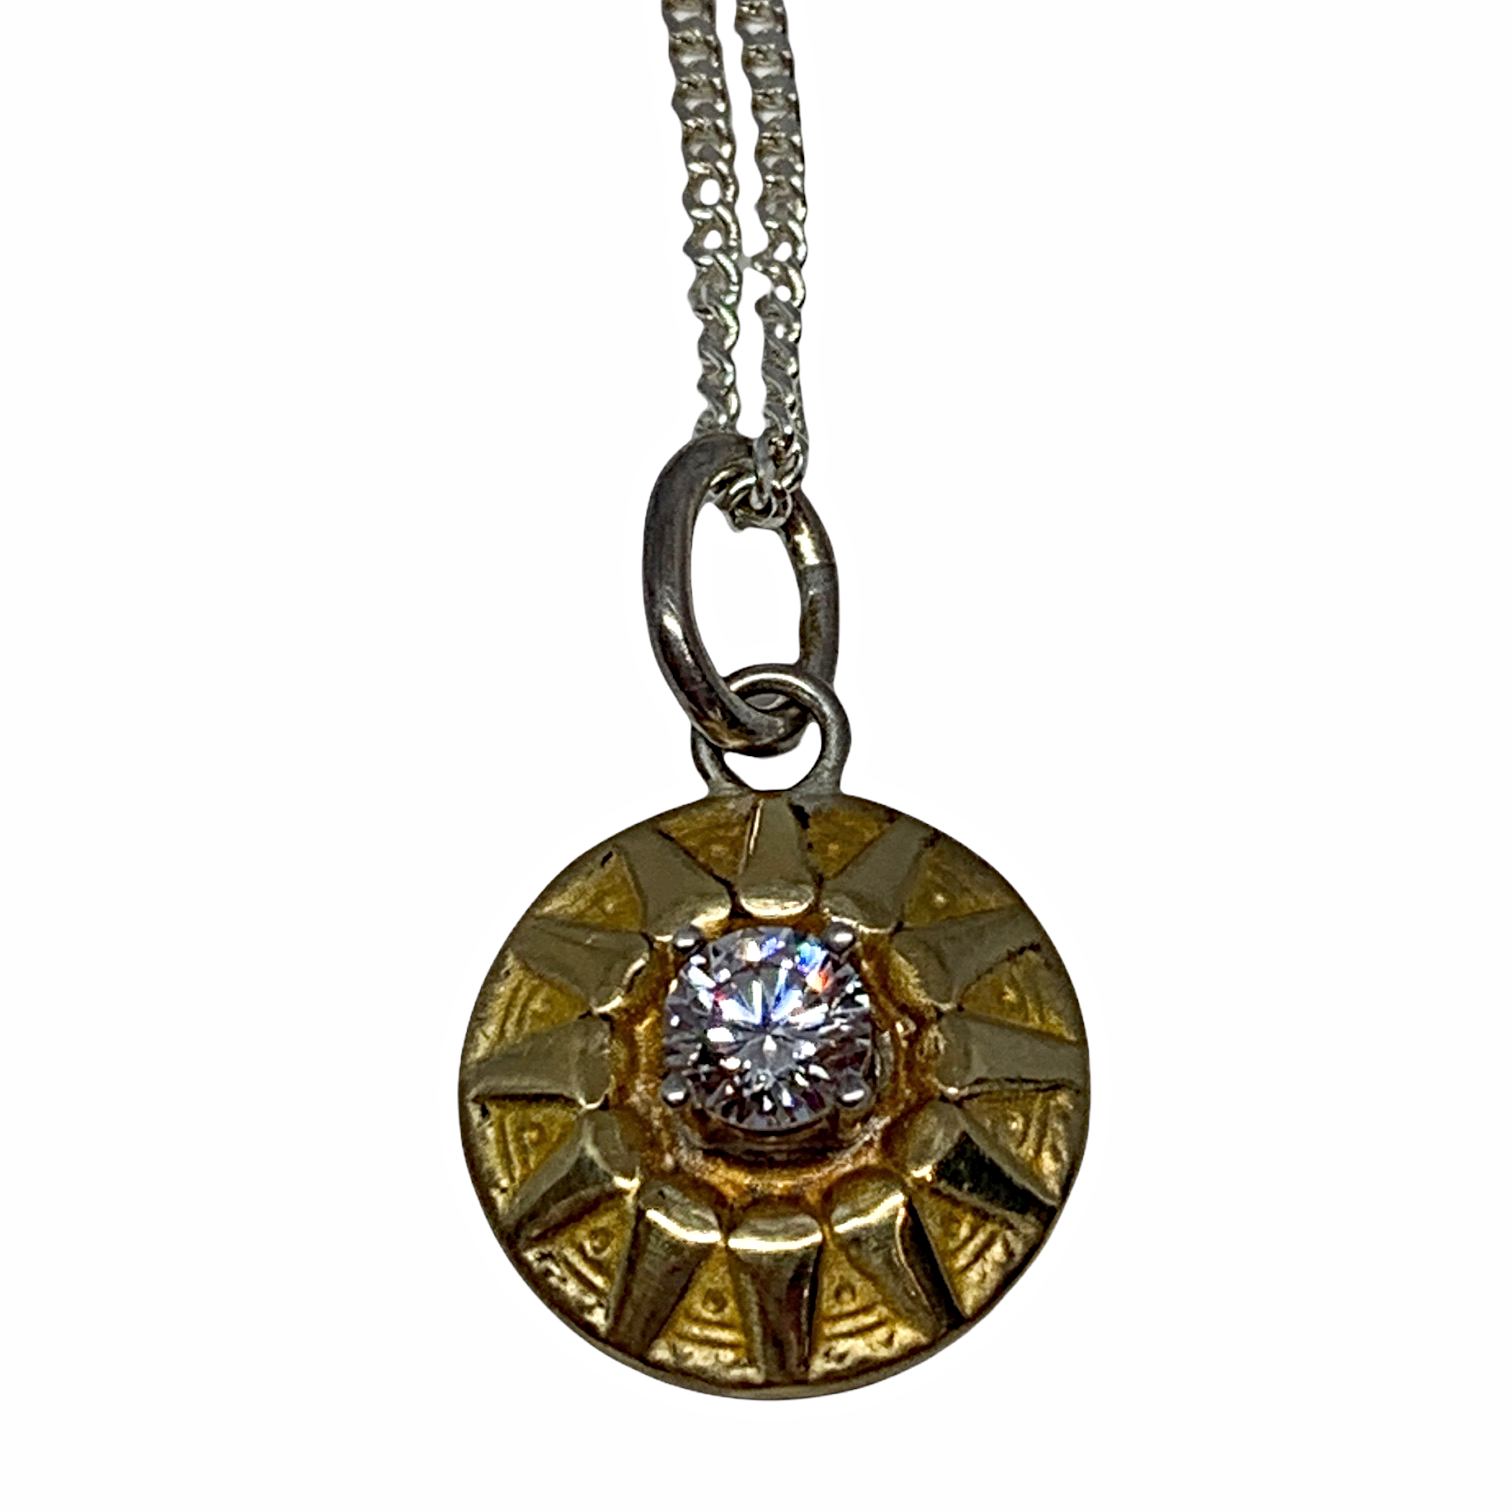 Handmade sterling silver, bronze, and CZ sundial necklace by Karyn Chopik | Effusion Art Gallery + Cast Glass Studio, Invermere BC